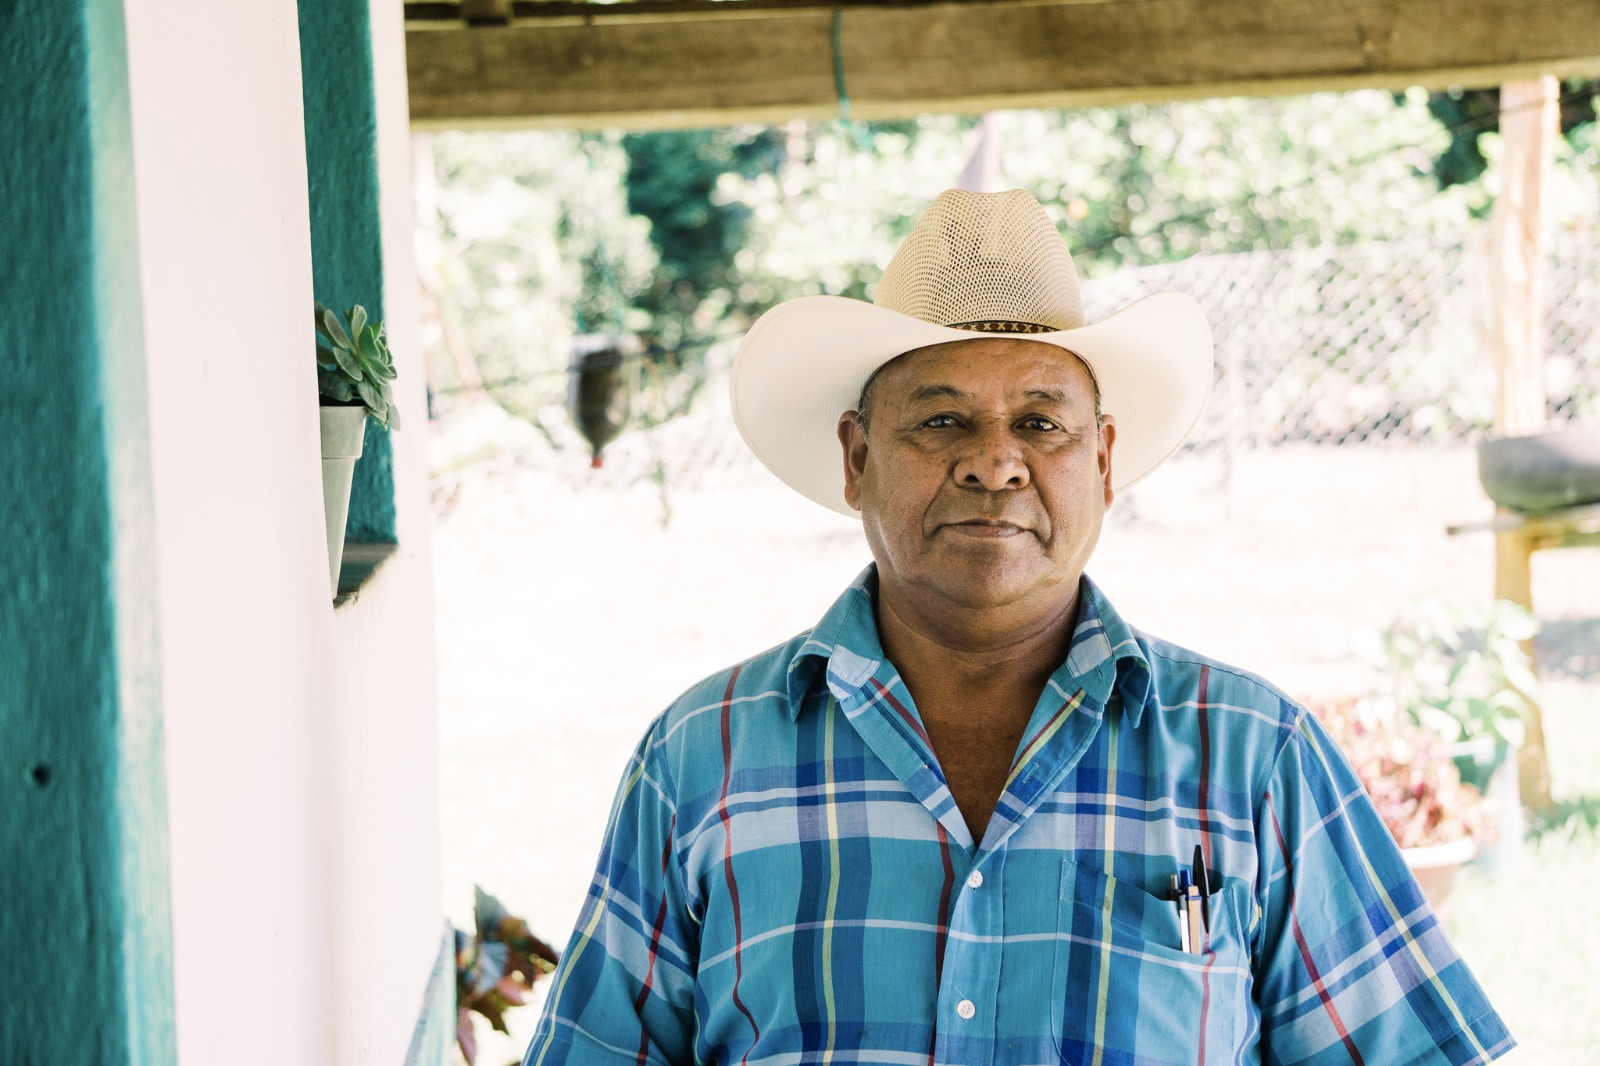 """- """"The national forest authority is more aligned with cutting the forest. It's more lucrative for their business relationships, for the government. But not for the people. We need to prepare the people, teach them, that this is what's happening.""""- Don Andrés Solorzano, Former President, Honduran Federation of Agroforestry Cooperatives"""